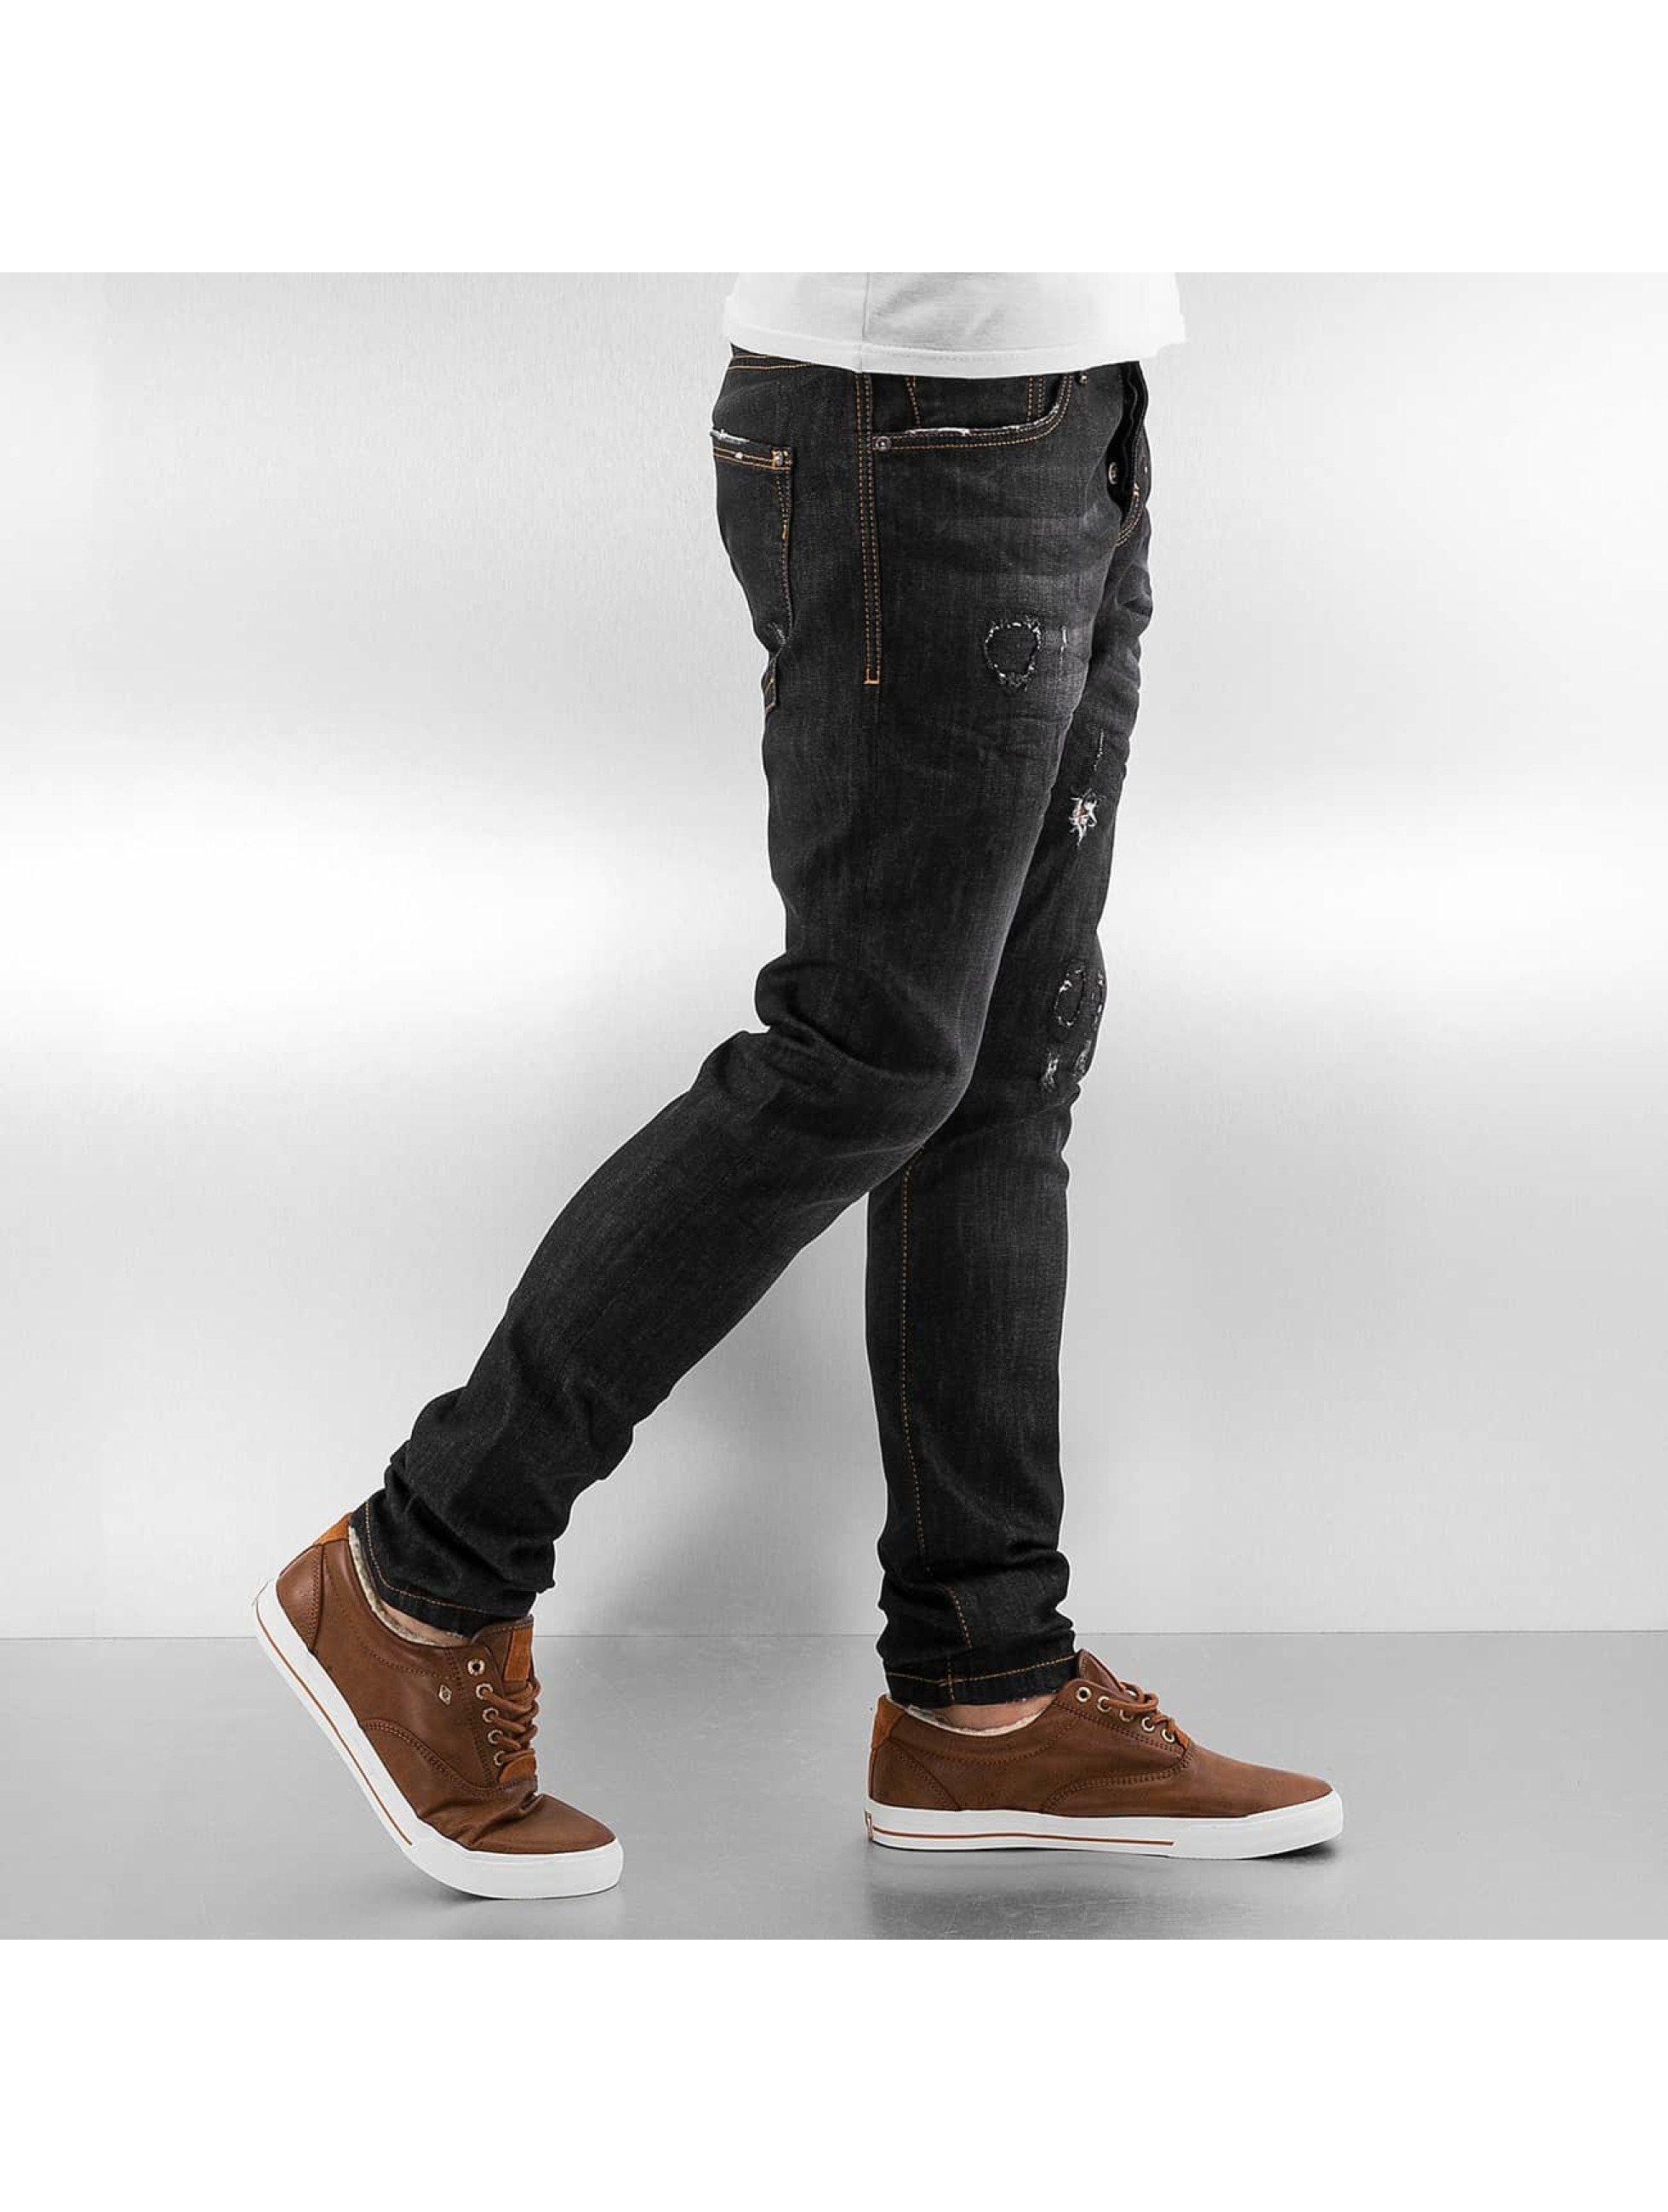 Pascucci-Uomini-Jeans-Jeans-straight-fit-Flora